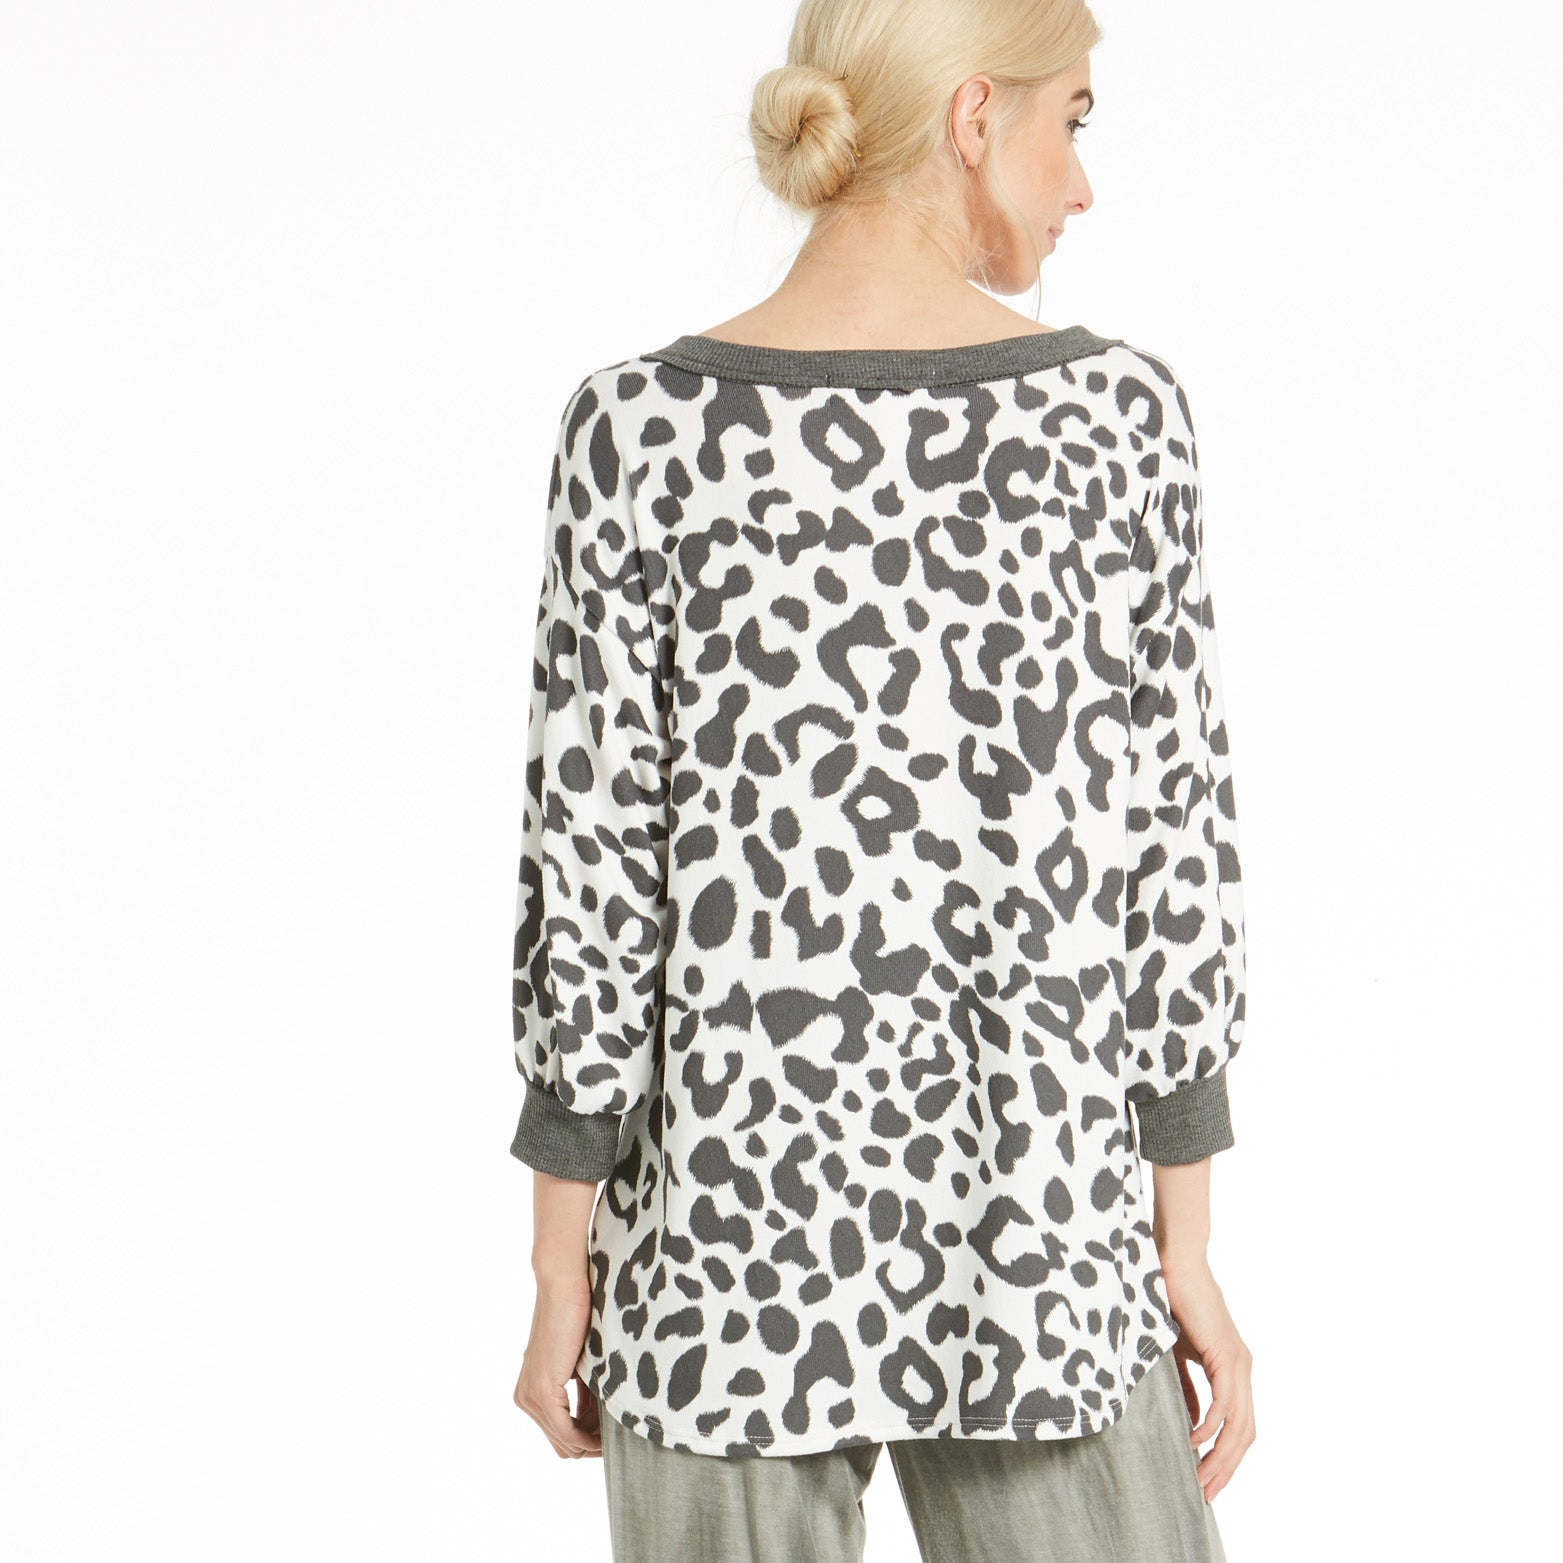 Comfy Animal Print Top - Love, Kuza